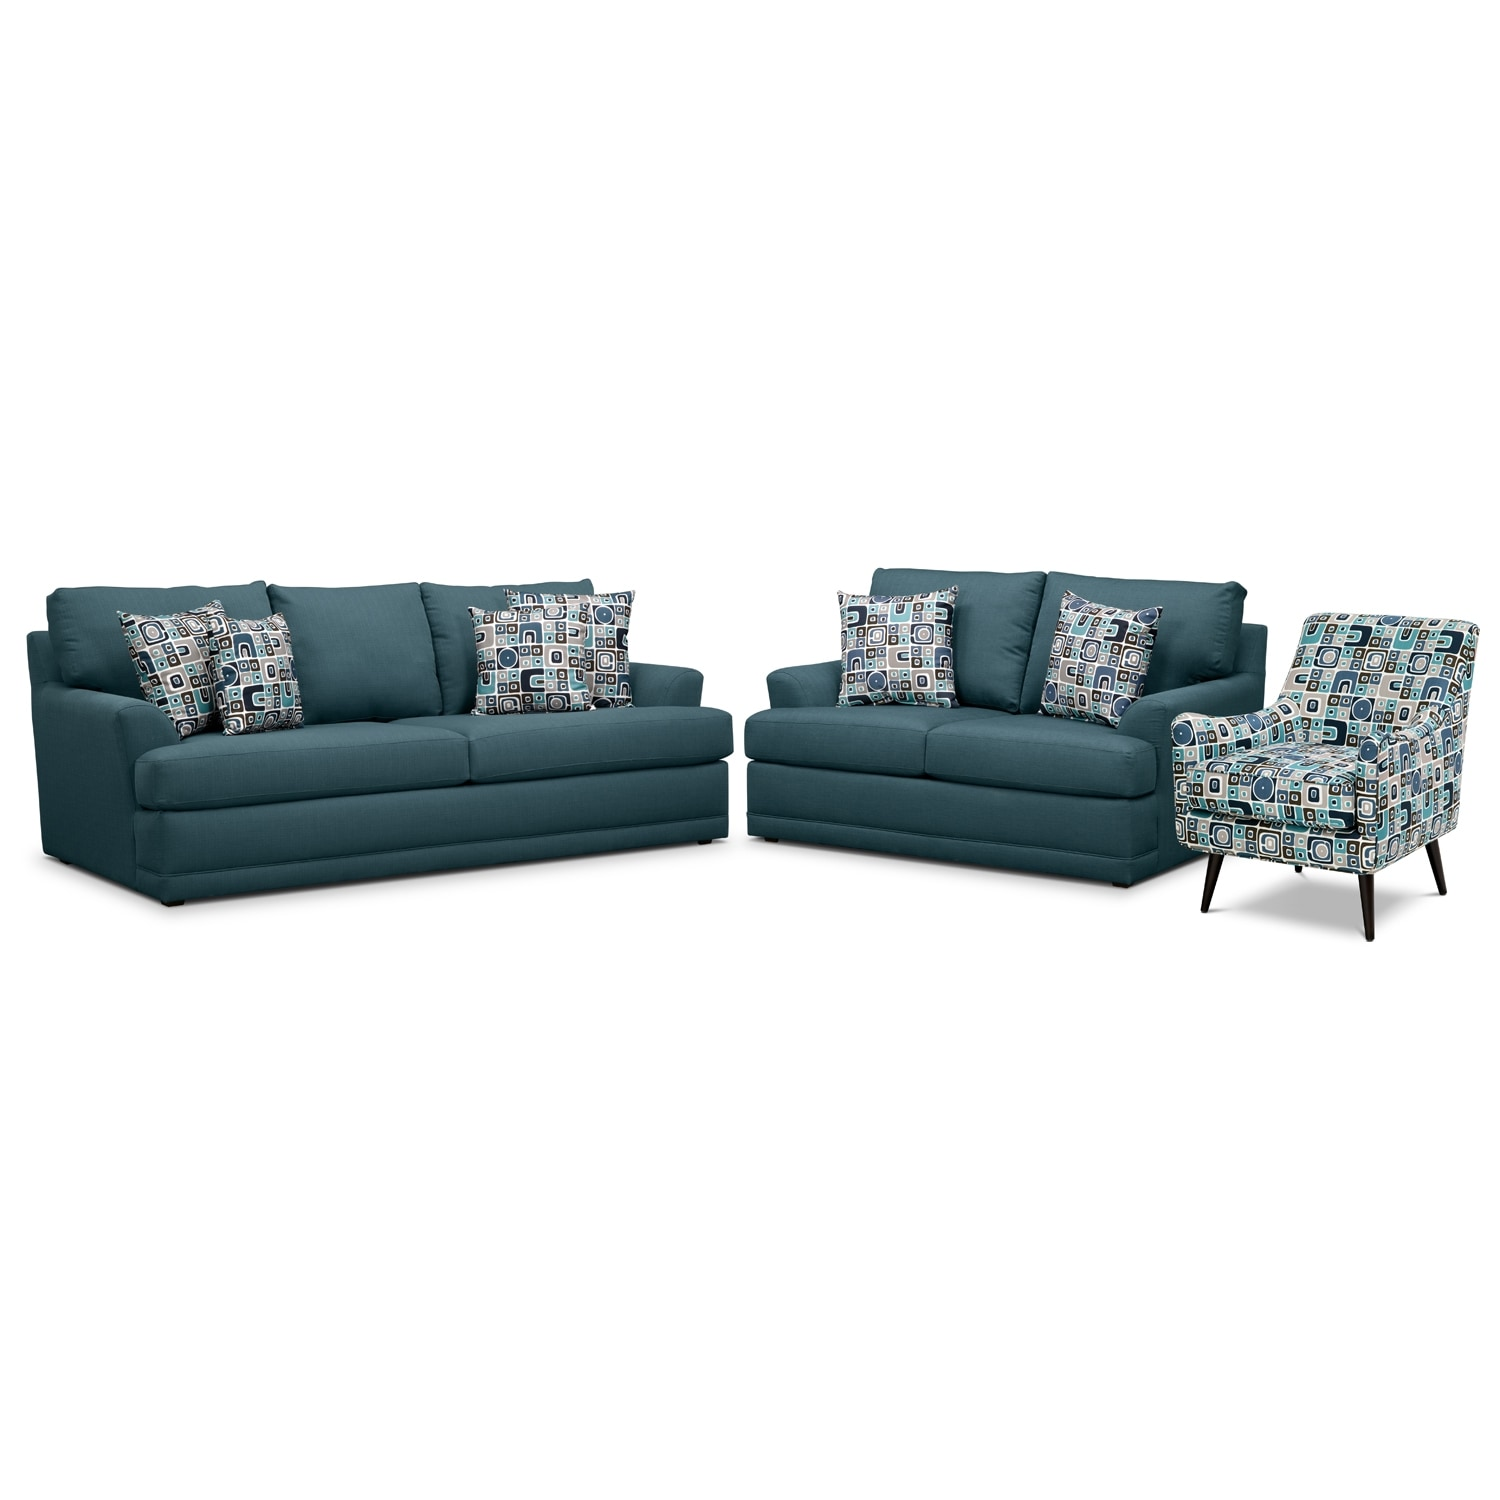 Living Room Furniture - Kismet 3 Pc. Sleeper Living Room with Accent Chair and Memory Foam Mattress - Teal